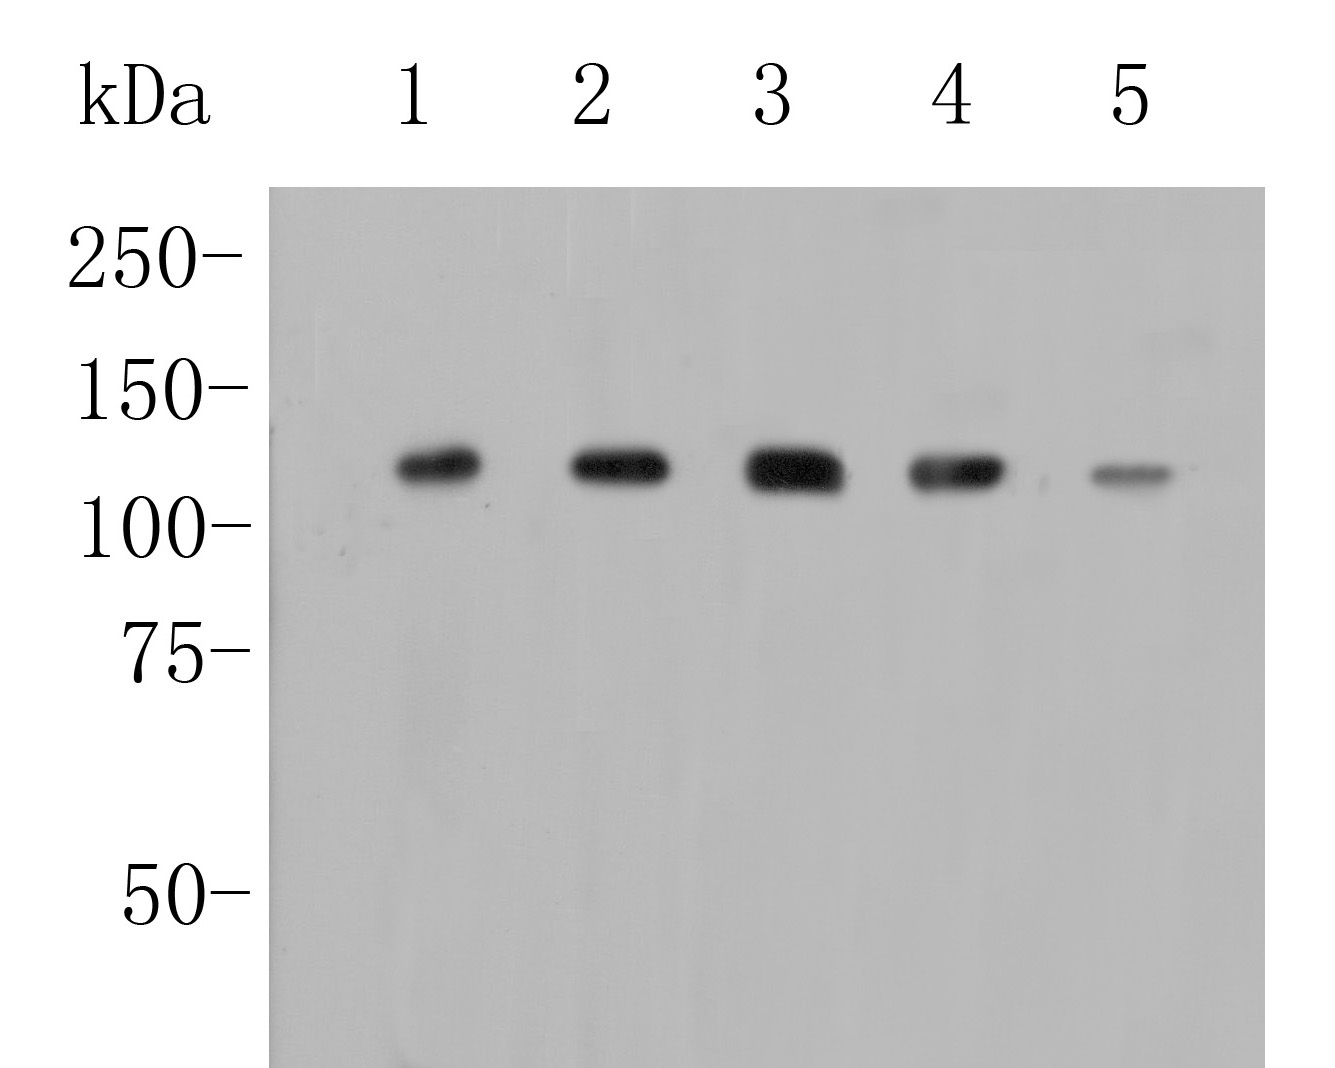 Western blot analysis of Drebrin on different lysates. Proteins were transferred to a PVDF membrane and blocked with 5% BSA in PBS for 1 hour at room temperature. The primary antibody (ER1902-55, 1/1000) was used in 5% BSA at room temperature for 2 hours. Goat Anti-Rabbit IgG - HRP Secondary Antibody (HA1001) at 1:5,000 dilution was used for 1 hour at room temperature.<br /> Positive control: <br /> Lane 1: A549 cell lysate<br /> Lane 2: PC-3M cell lysate<br /> Lane 3: HepG2 cell lysate<br /> Lane 4: 293 cell lysate<br /> Lane 5: Siha cell lysate